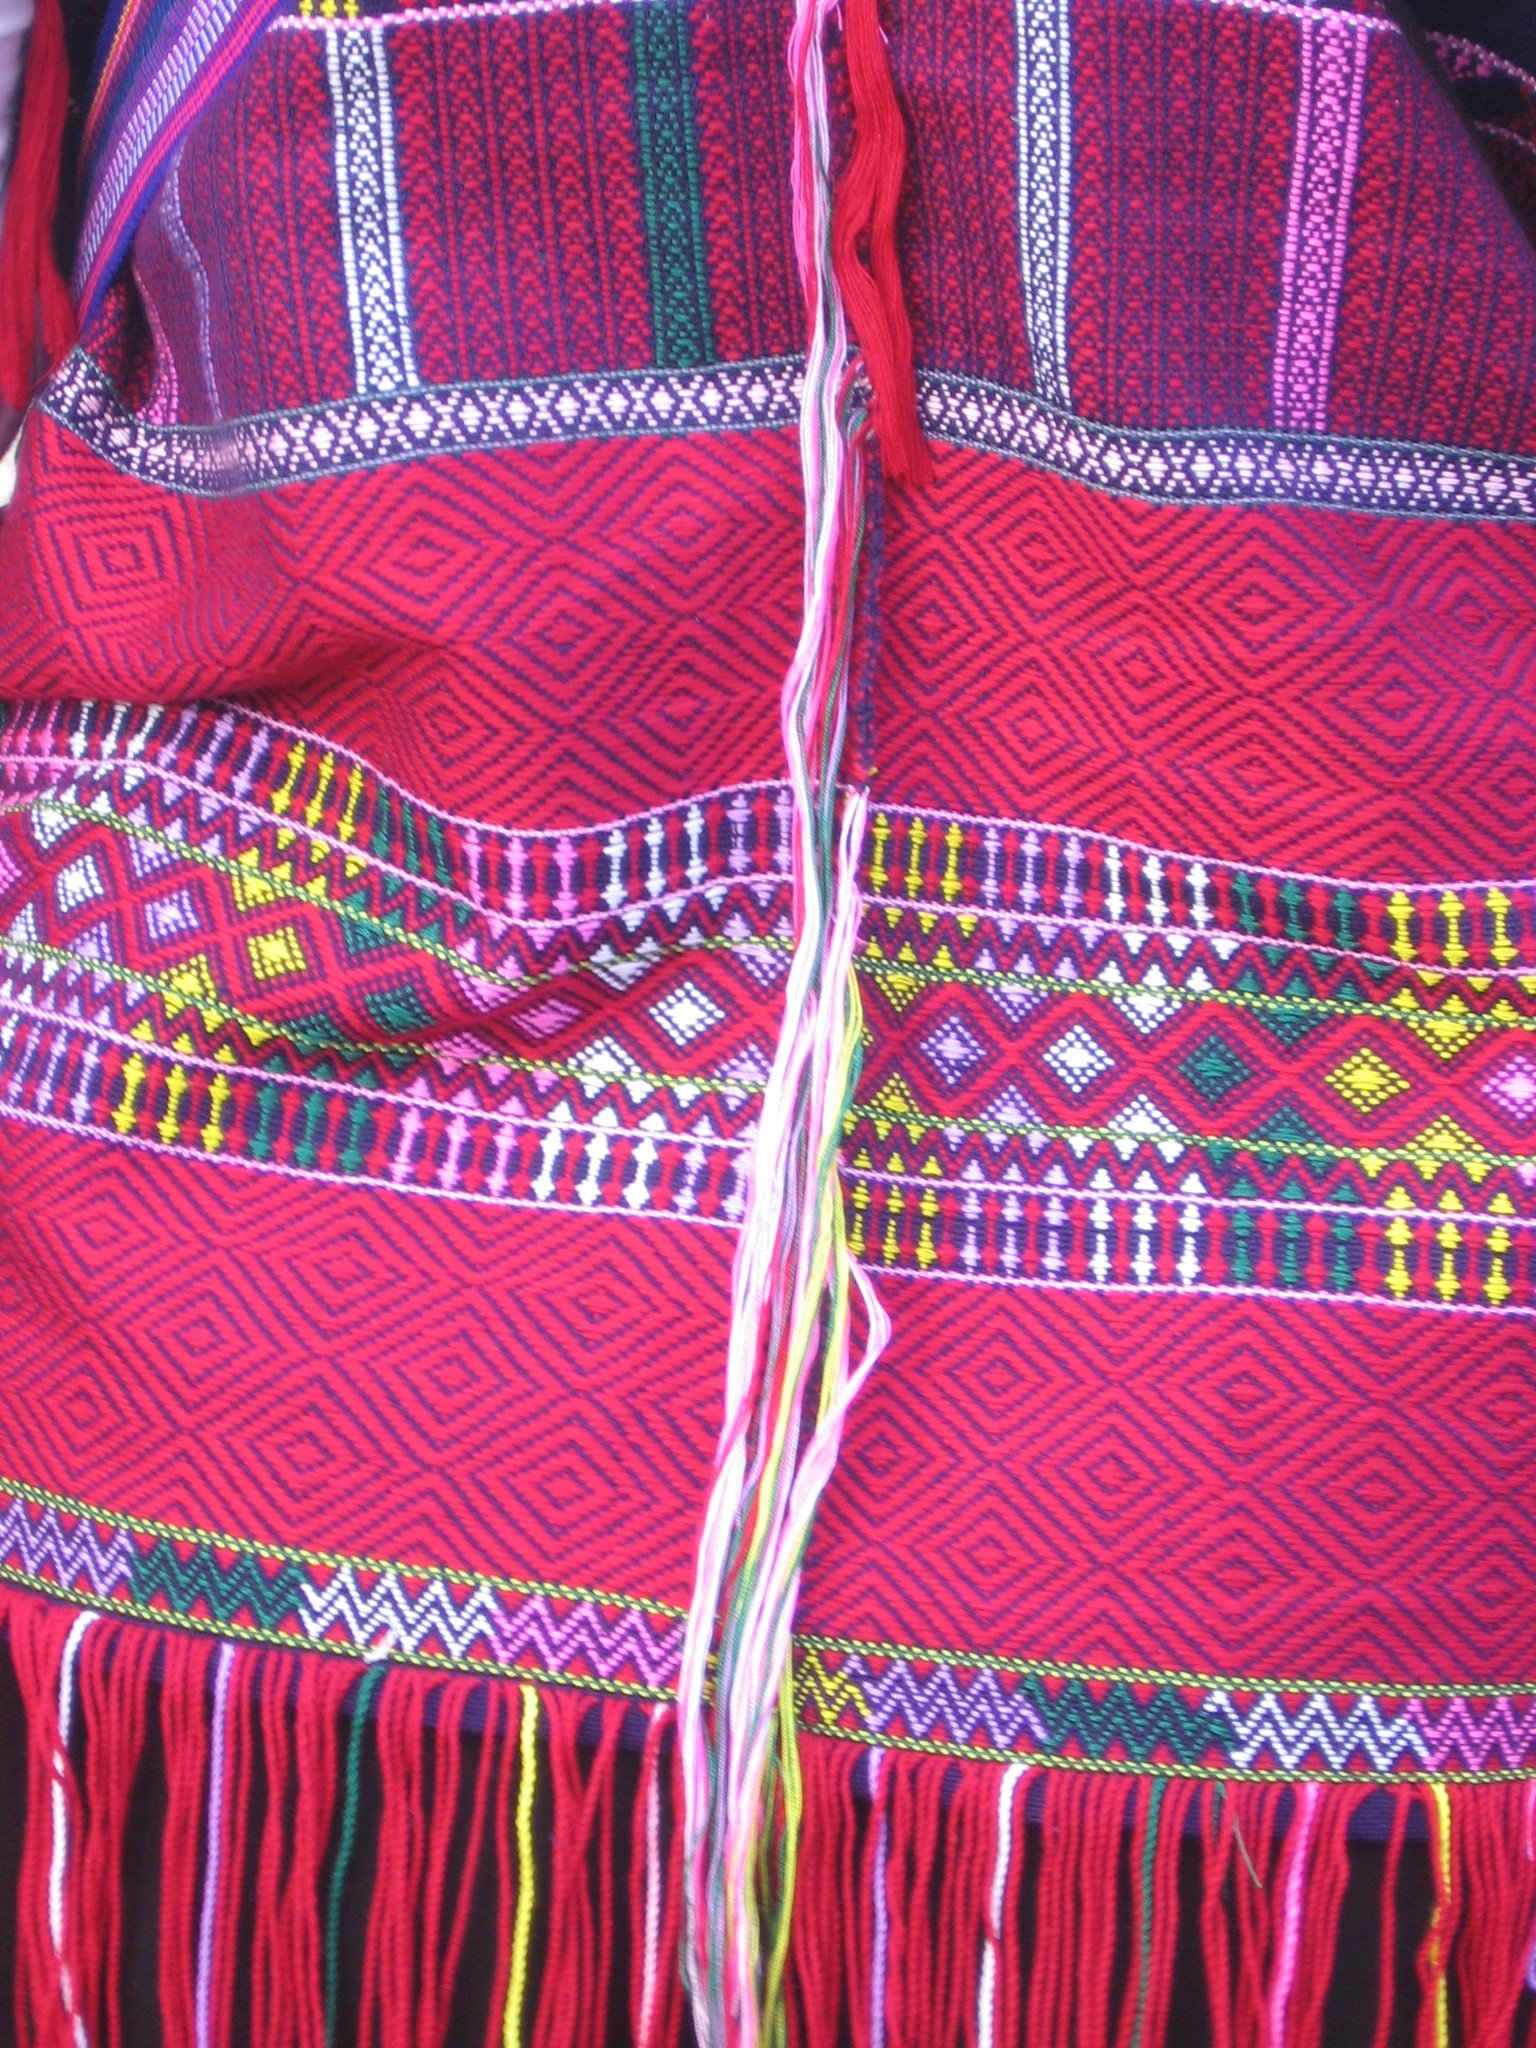 """Image from the """"Ethnic Karen Textiles"""" collection by Stewart Manley, Photograph, Mud Season Review"""